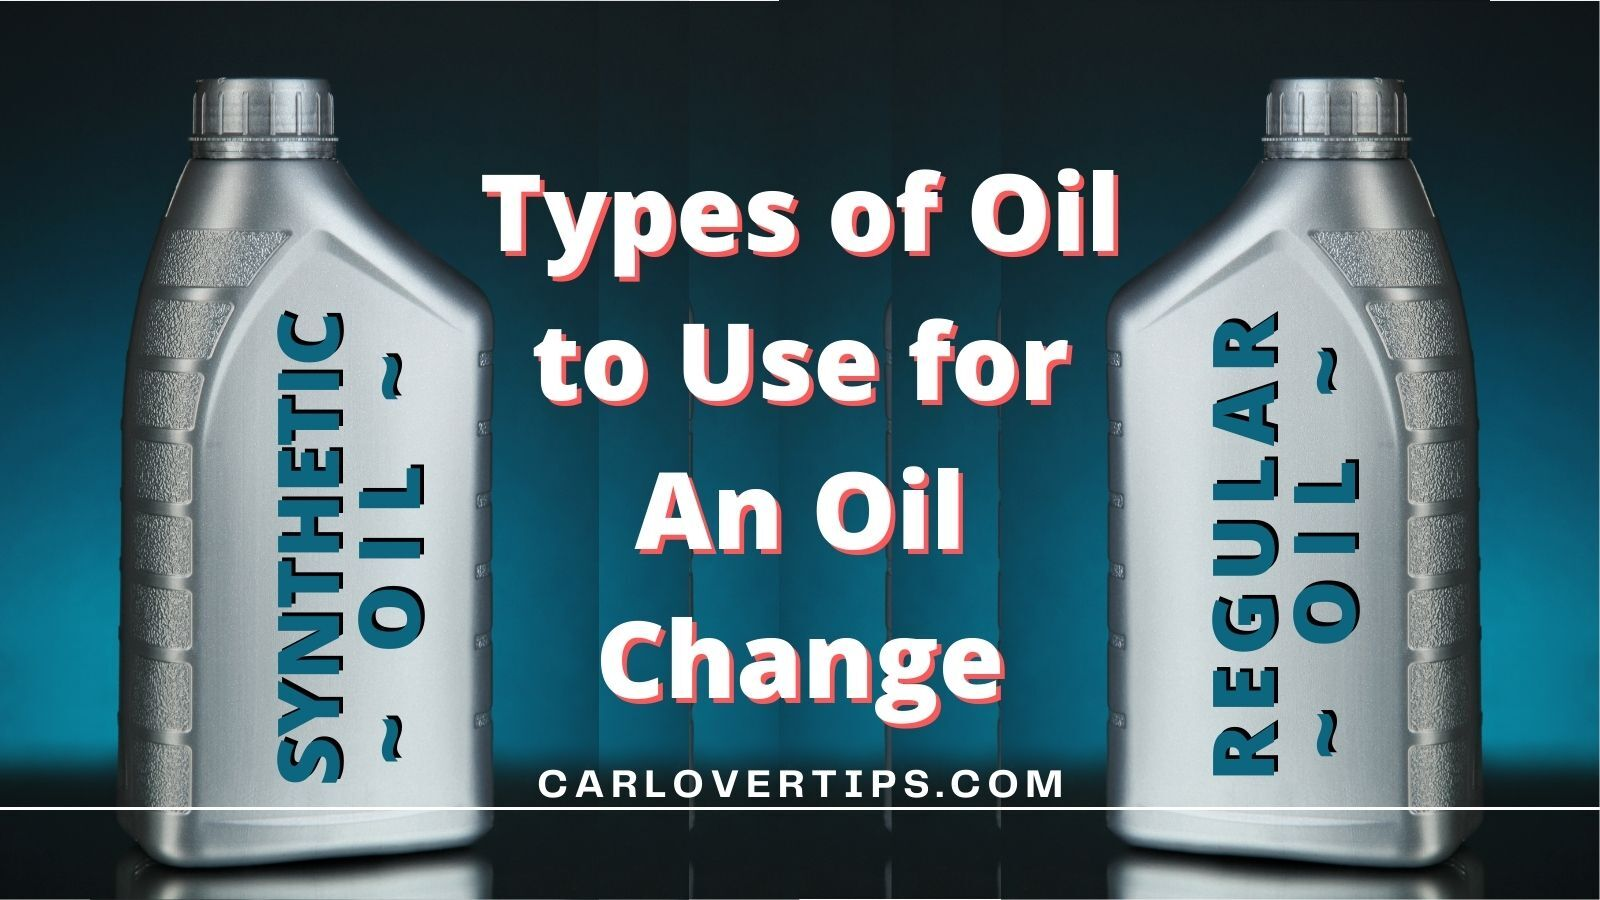 Types of Oil to Use for An Oil Change